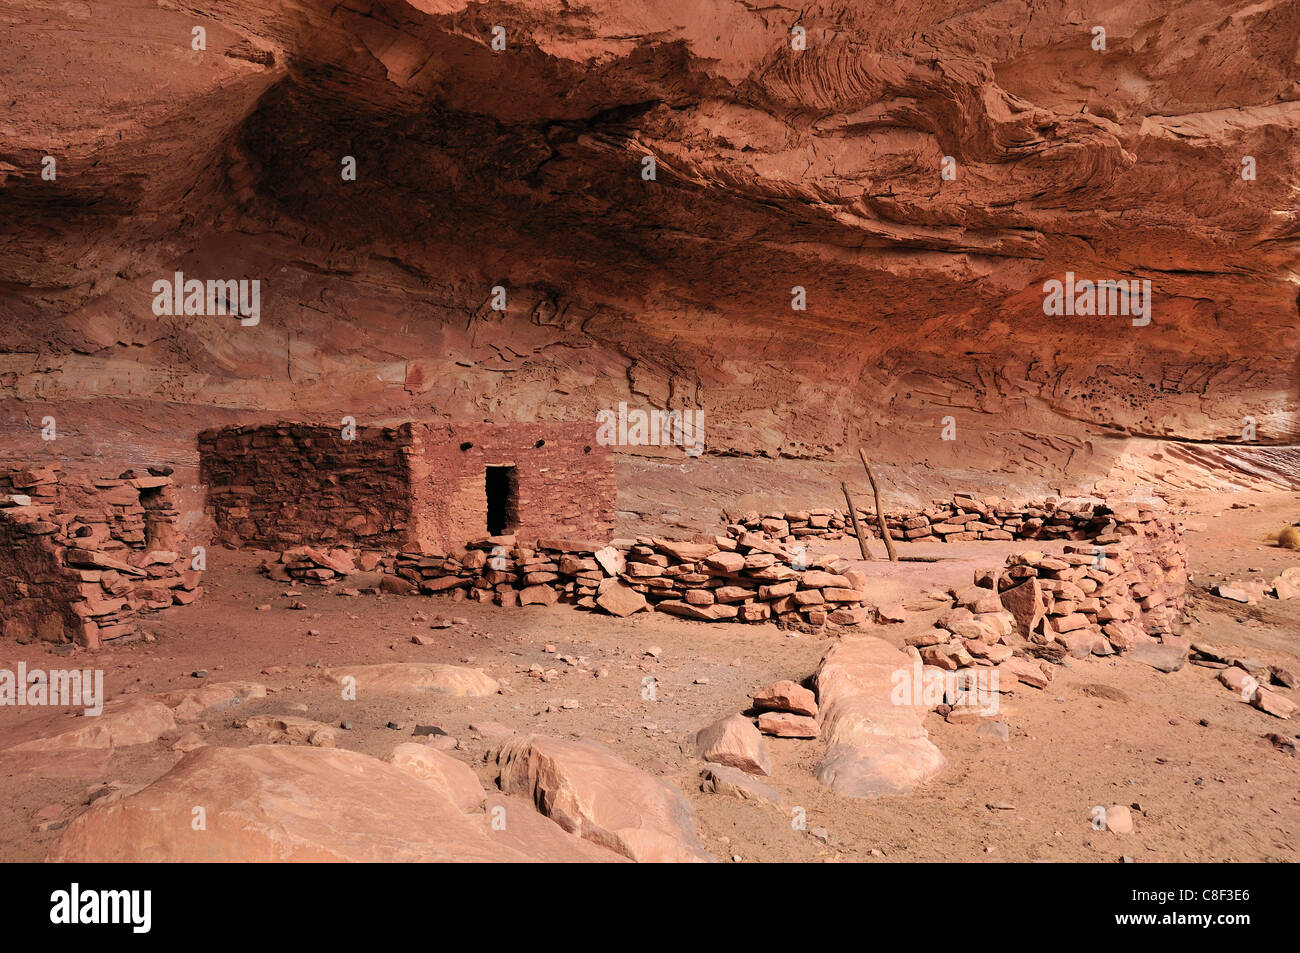 Anasazi, Cliff dwellings, Perfect Kiva, ruin, Bullet Canyon, Grand Gulch Primitive Area, Cedar Mesa, Colorado Plateau, - Stock Image